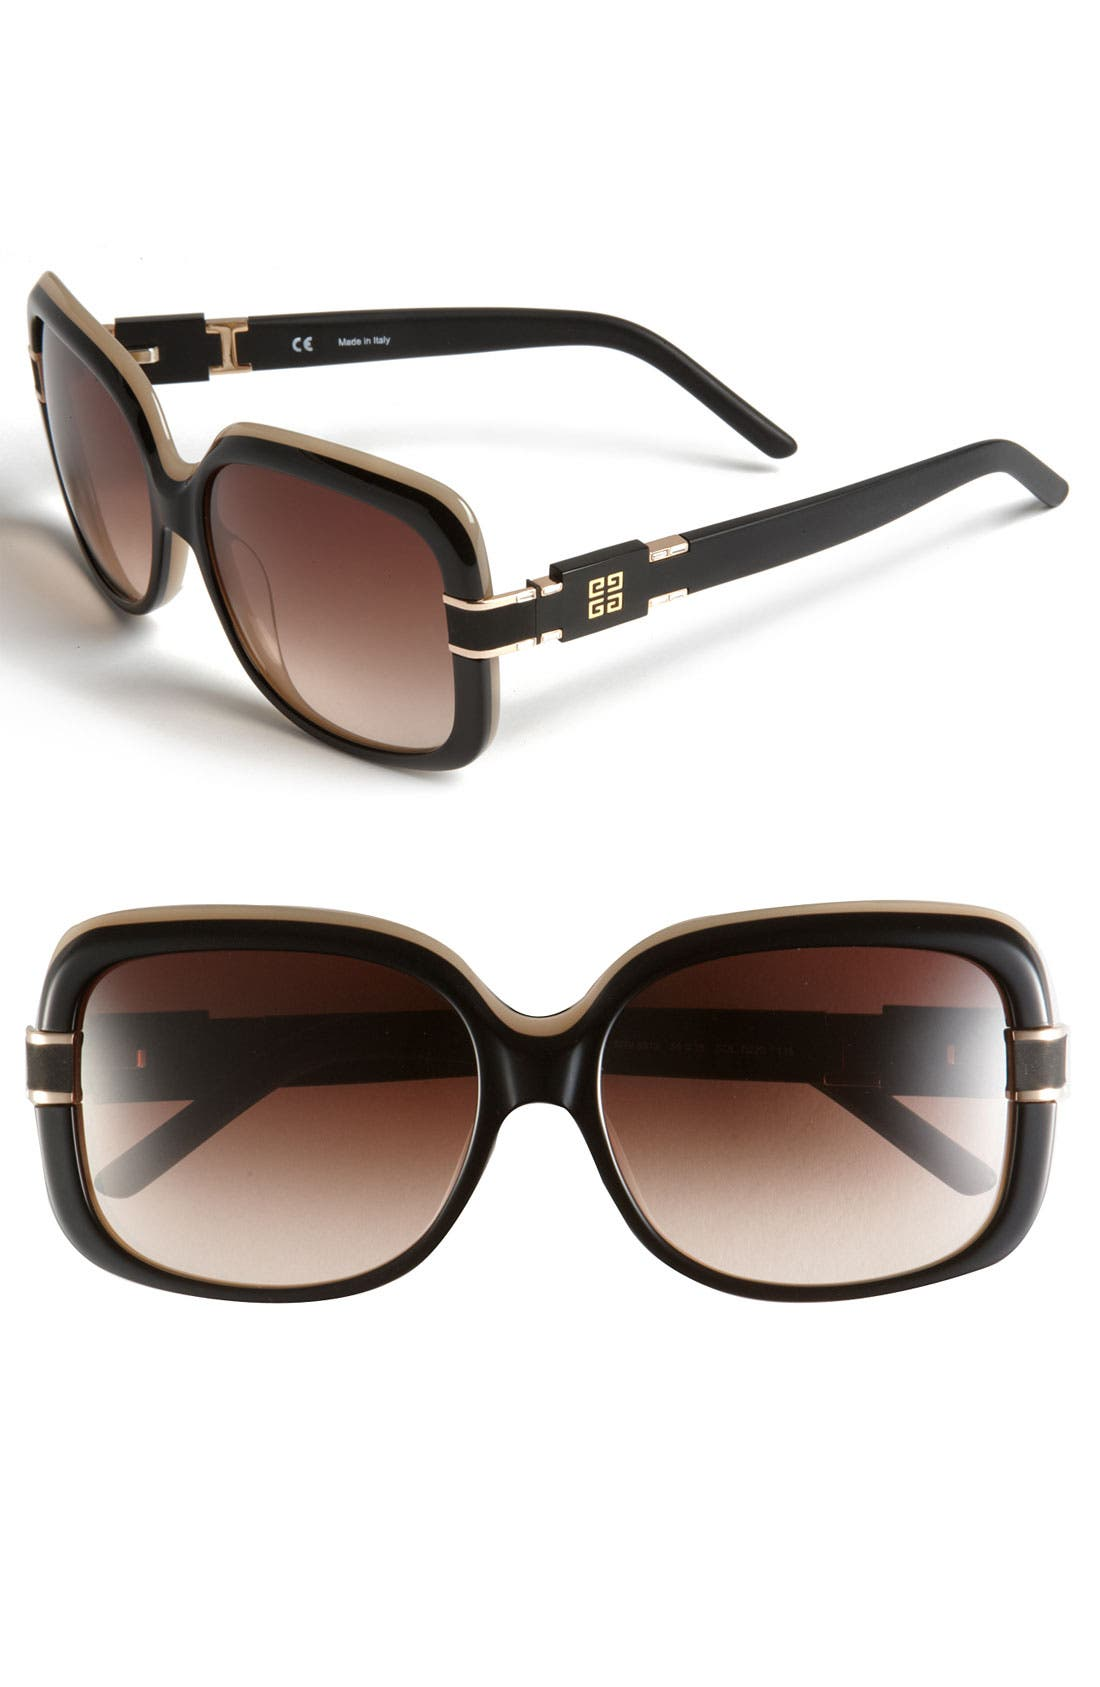 Main Image - Givenchy Square Sunglasses